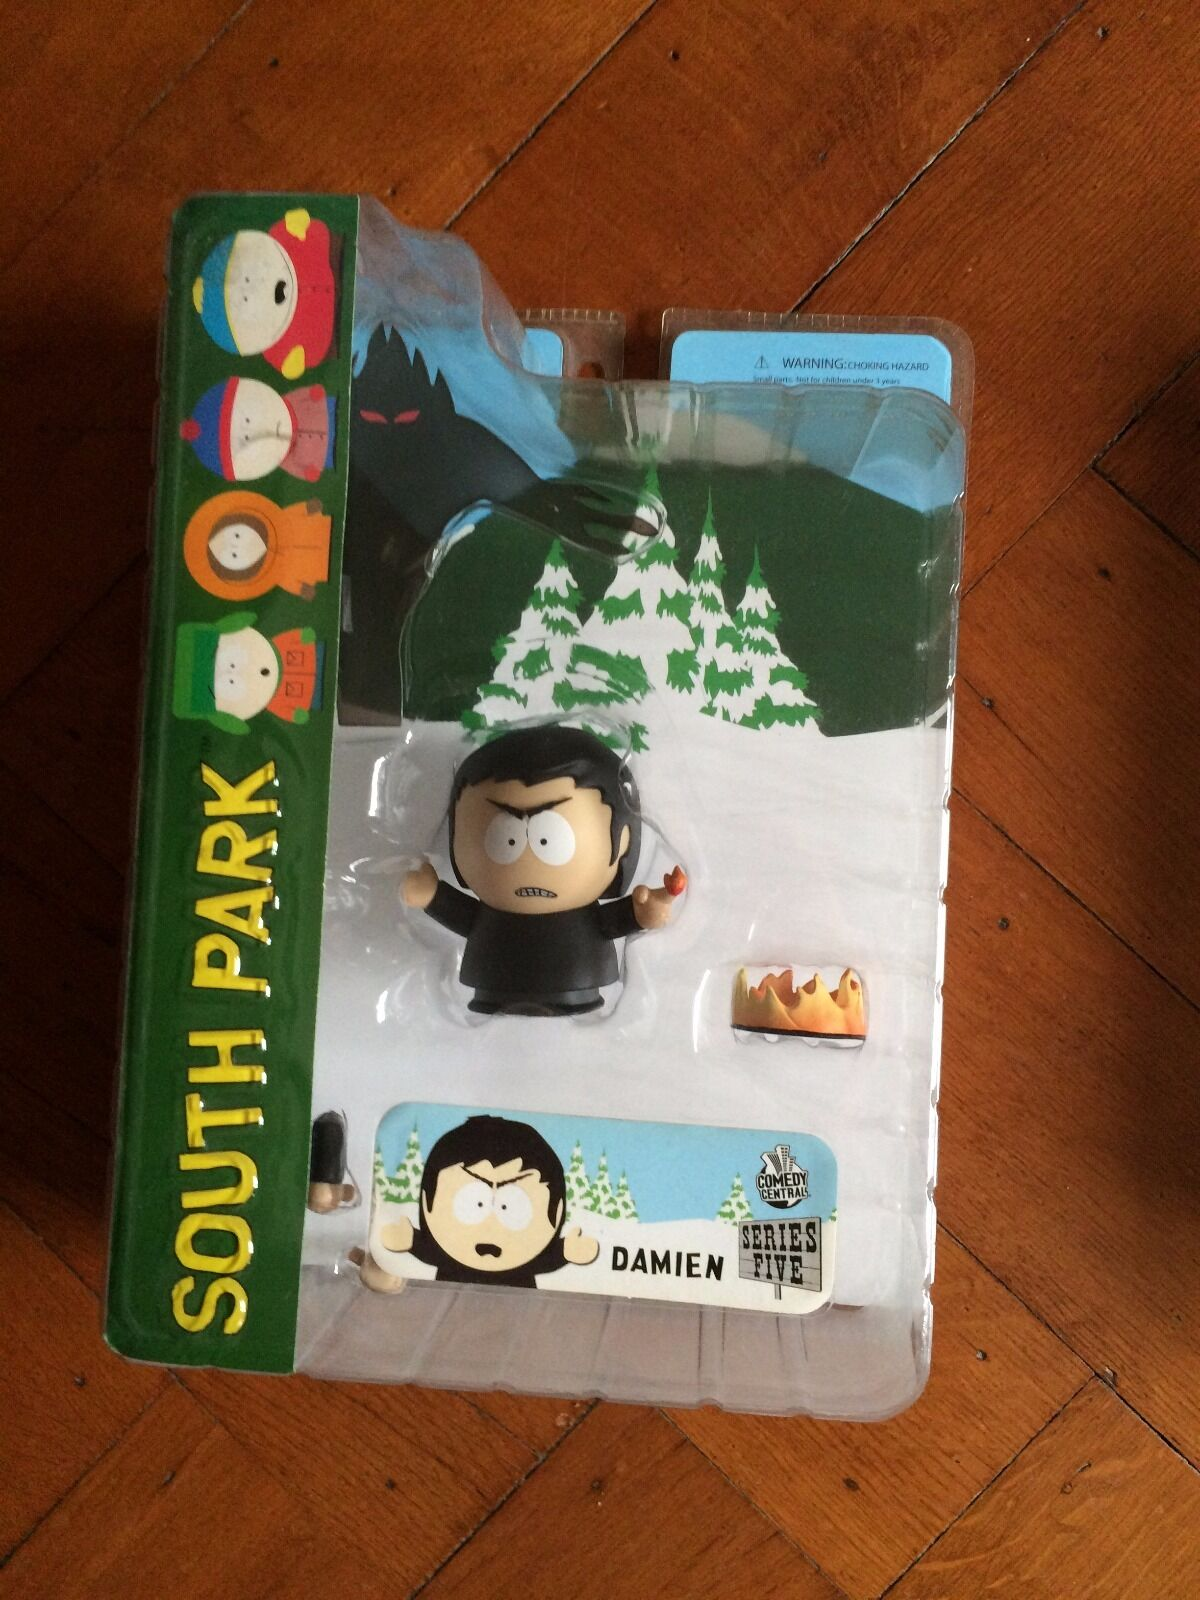 South Park Series 5,  Damien, Mezco 2006 New Sealed